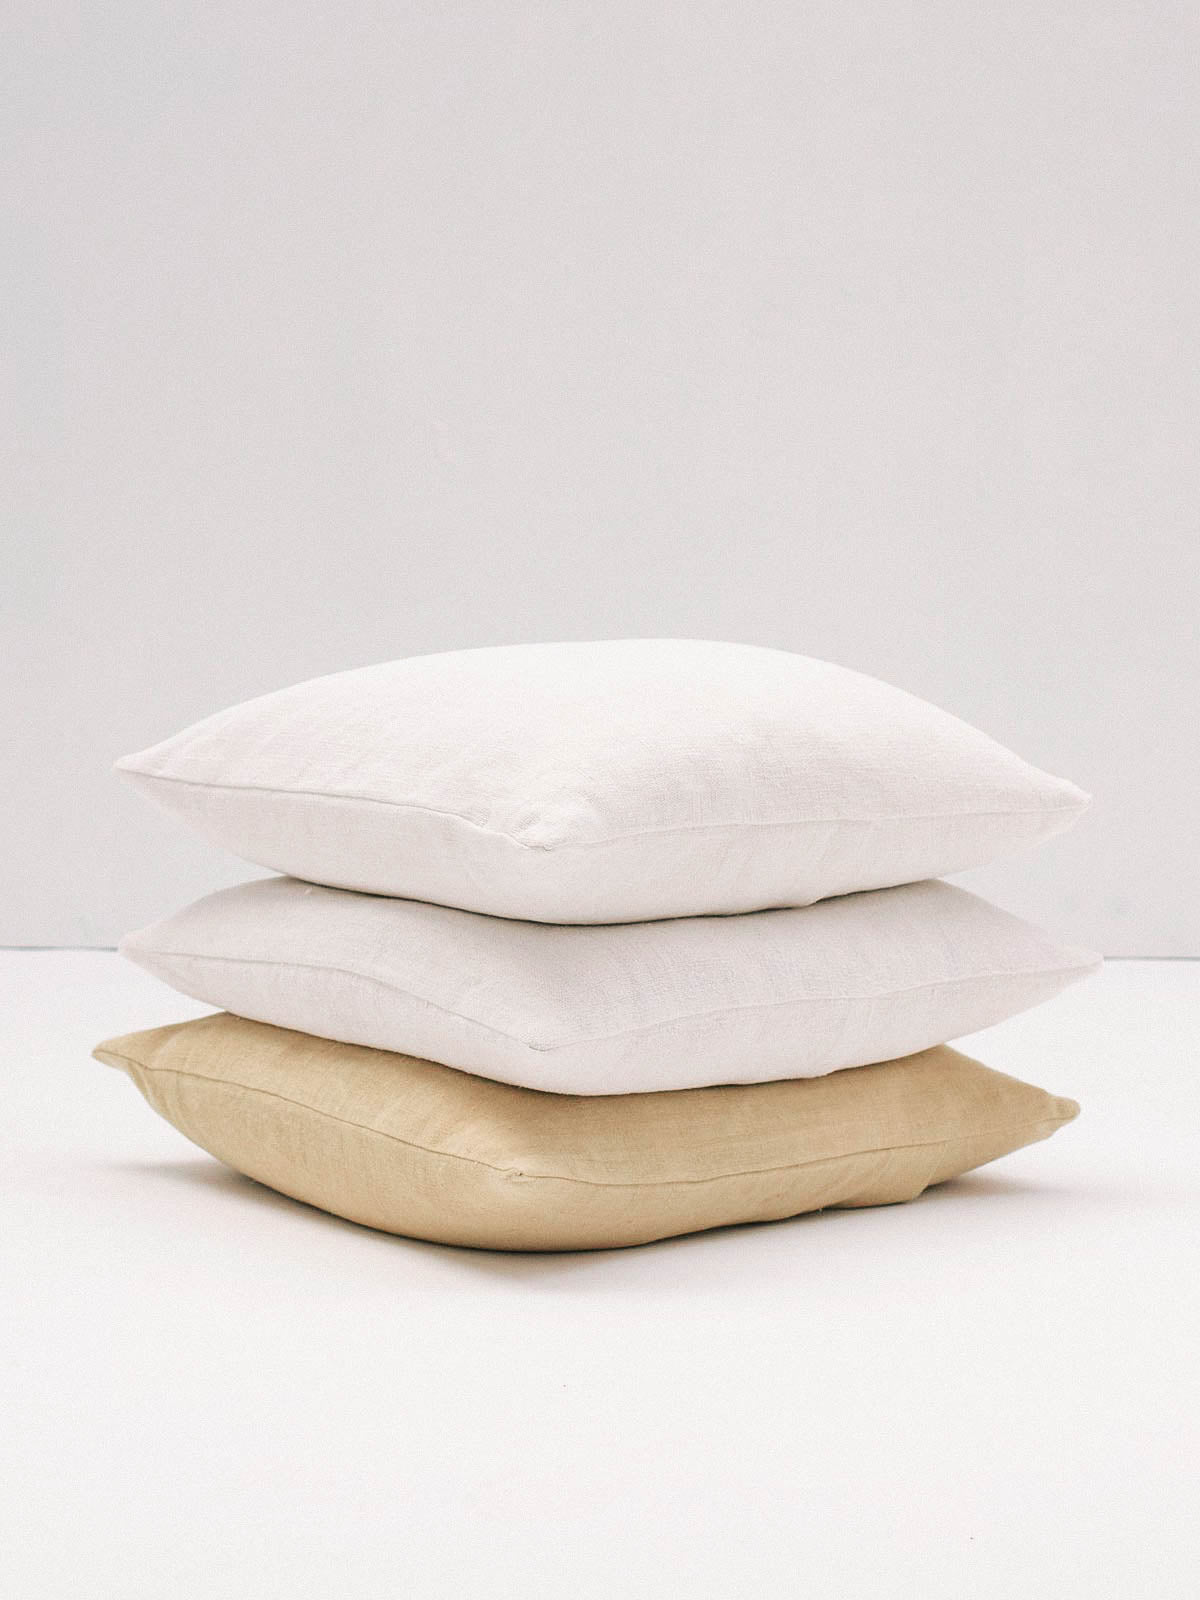 NEUTRAL LINEN CUSHION - Celestial - CELESTIAL - Sourced from artists in Europe, Asia and Africa, these limited edition pieces inspire a life of simplicity and style.